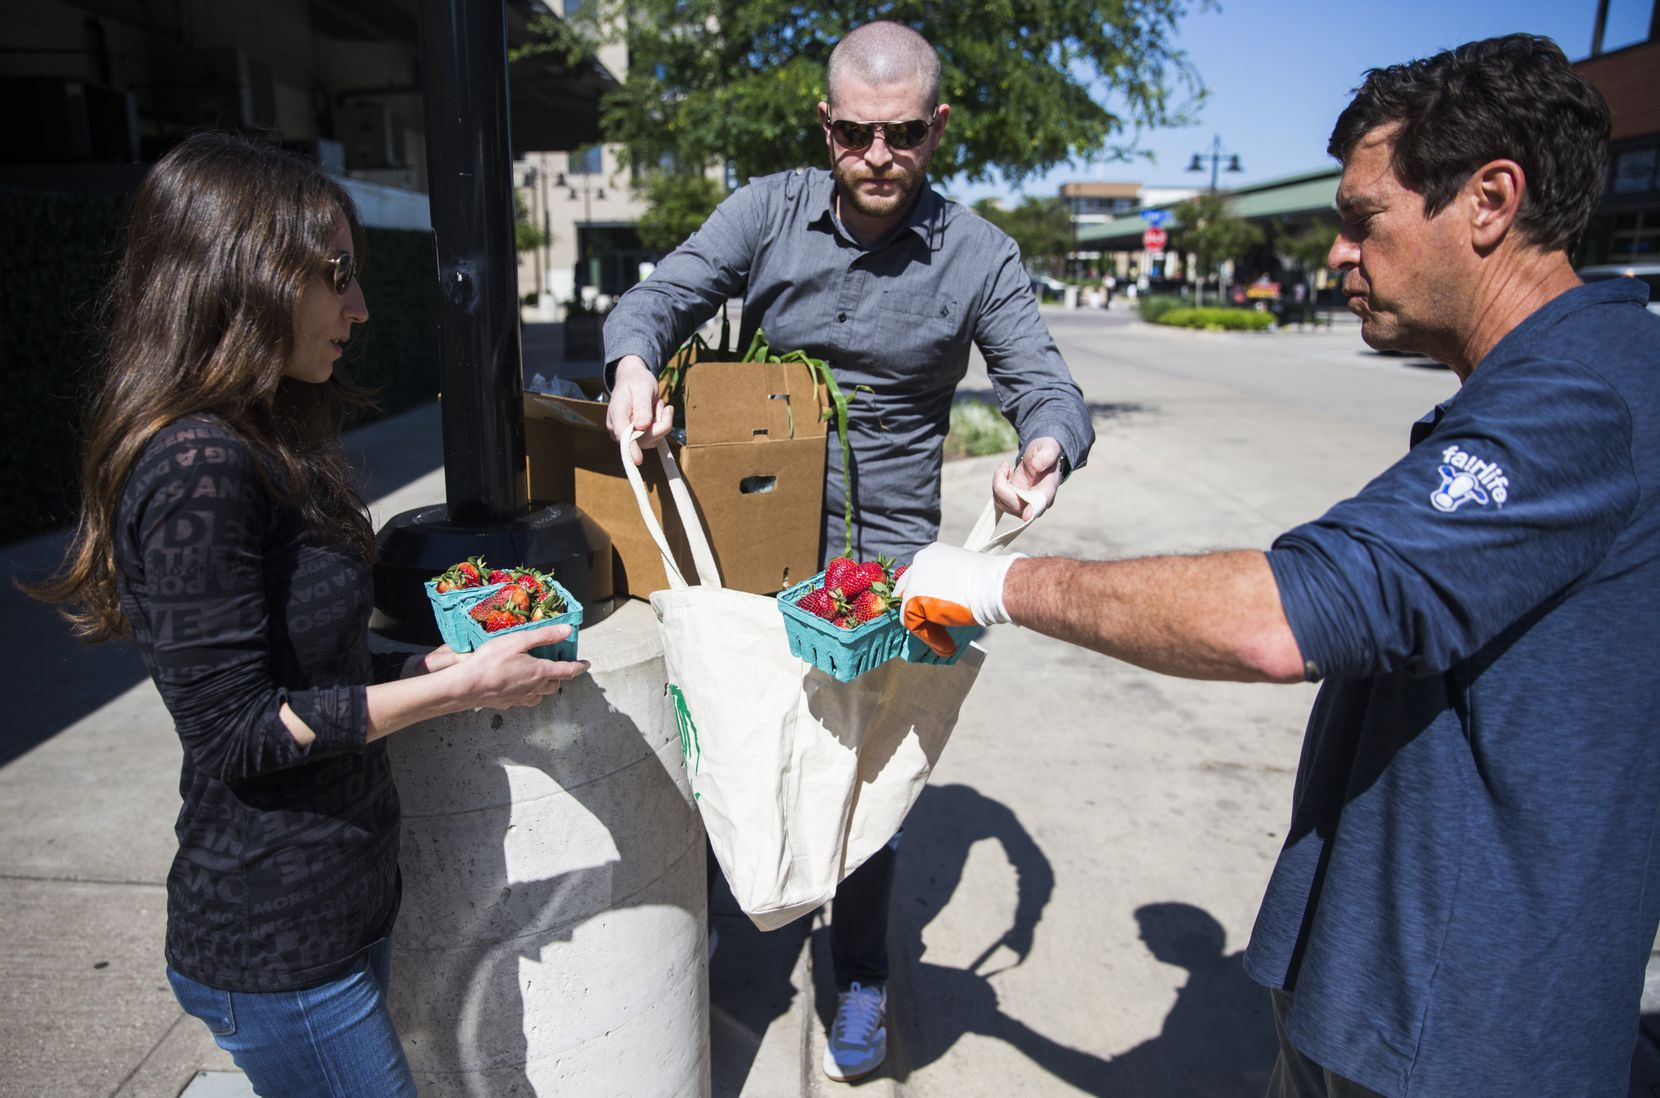 Farmer John Kilburn (right) of Comeback Creek Farm drops off a box of fruits and vegetables to customers Maude and David Hancock on Wednesday, April 15, 2020, at the Dallas Farmers Market in Dallas. (Ashley Landis/The Dallas Morning News)